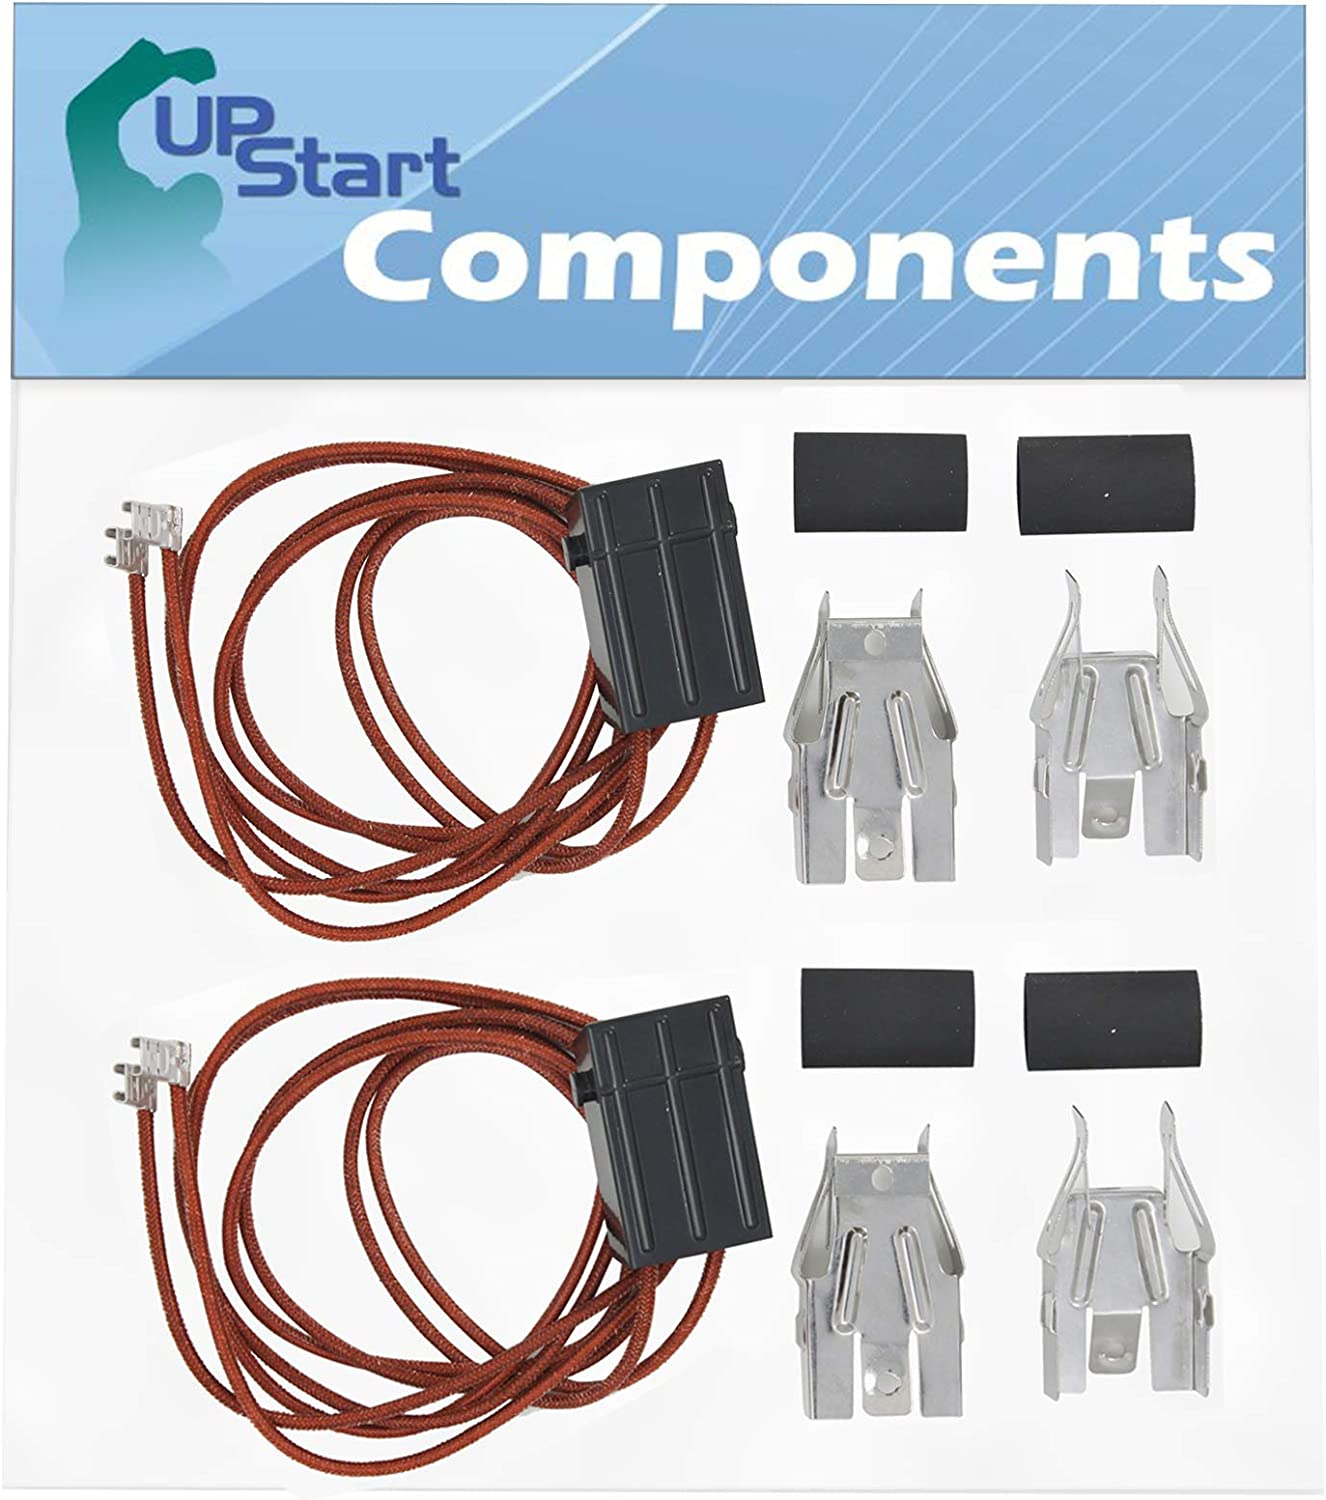 2 Pack WB17T10006 Terminal Block Kit Replacement for Whirlpool Rbd305pdq8, GE Jbp24bb4wh, GE Jbp24bb1wh, GE Jbp21bb1, GE Rb757bh1wh, GE Abs300j1ww, GE Rb757wh1ww, GE Jbp24wb4ww, GE Rb757bc2wh